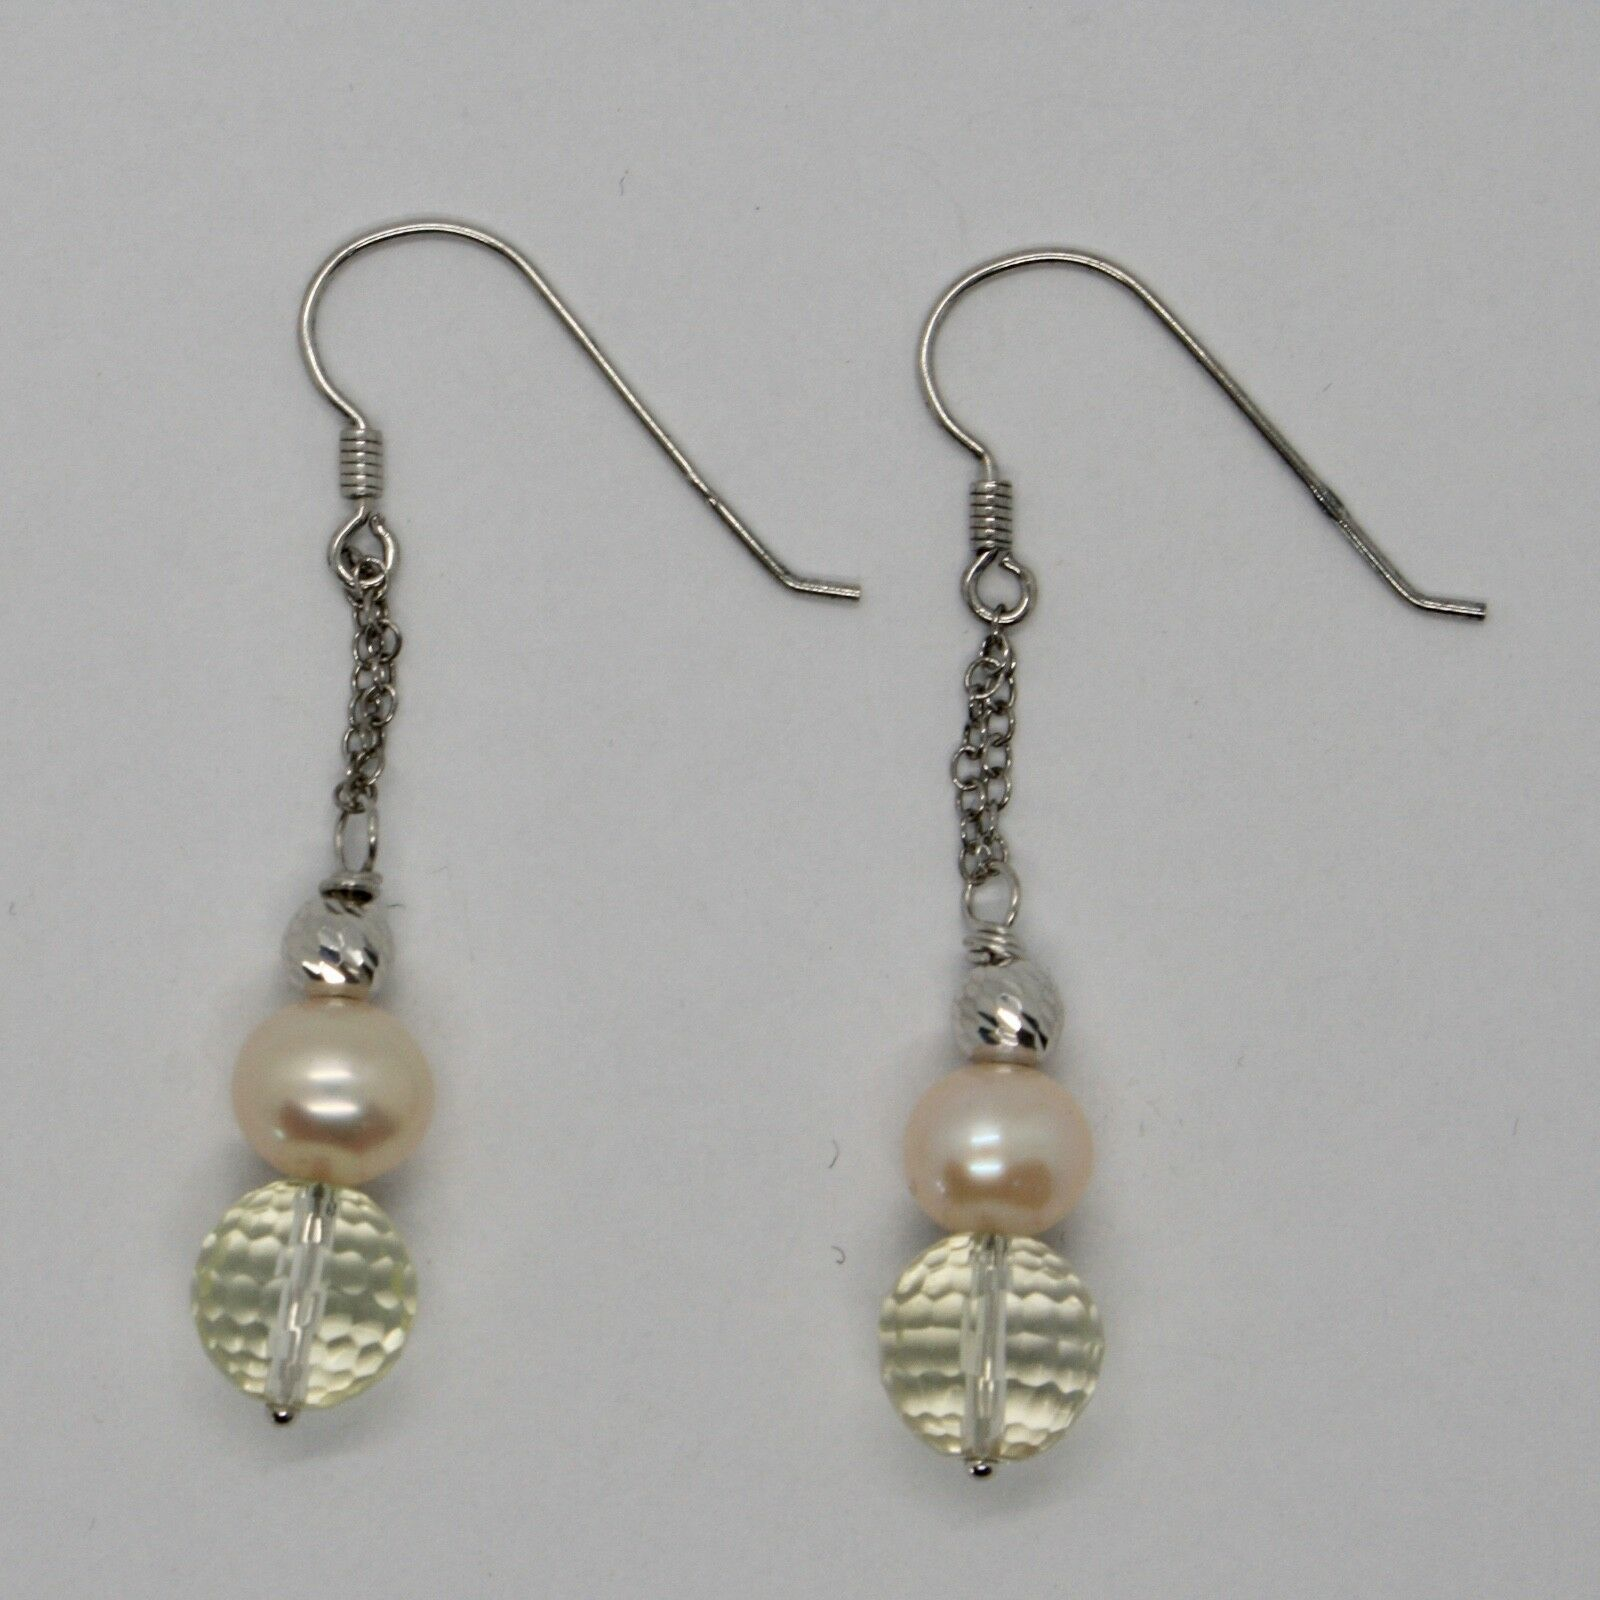 Silver Earrings 925 Rhodium Hanging With Quartz Lemon Faceted And Pearls